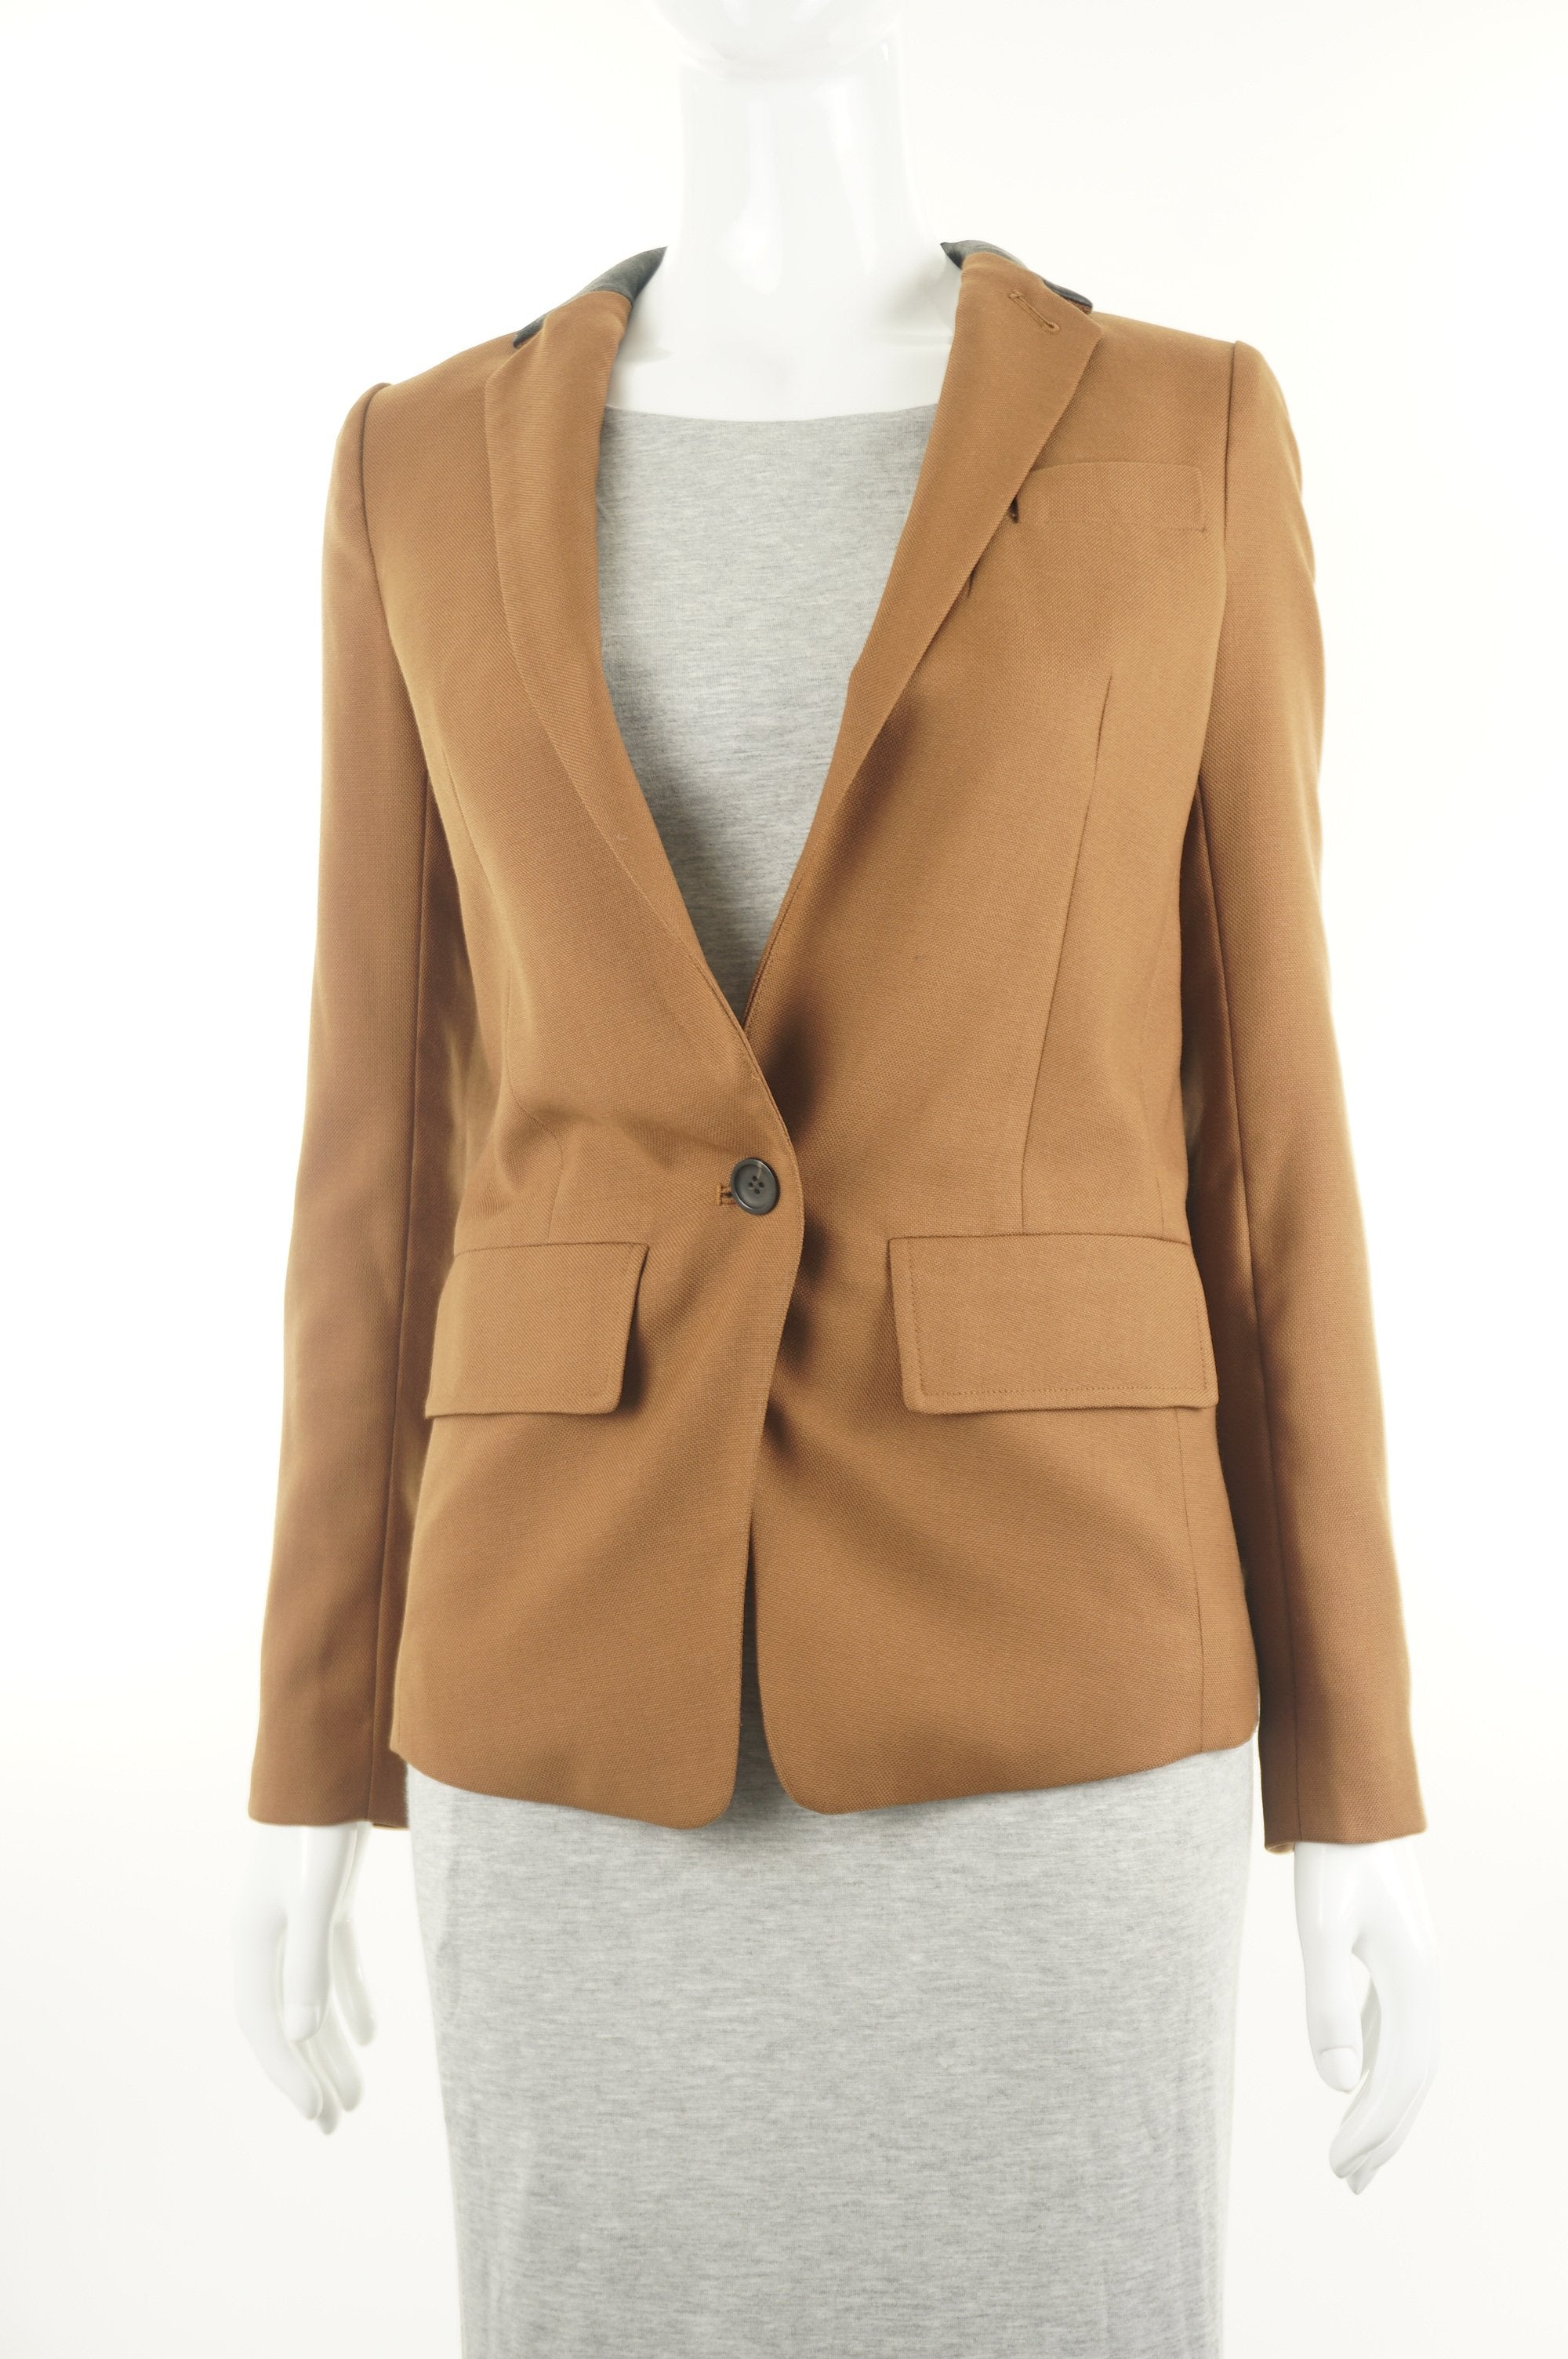 Club Monaco Brown Business Casual Jacket, Business and fashionable? Look no further! This brown business casual jacket is what you've been searching for., Brown, Shell: 55% Wool, 45% Polyester. Lining: 100% Polyester, women's Jackets & Coats, women's Brown Jackets & Coats, Club Monaco women's Jackets & Coats, jacket, women's brown jacket with suit jeather black collar, women's designer brown suit jacket, women's professional wear, club monacco business blazer